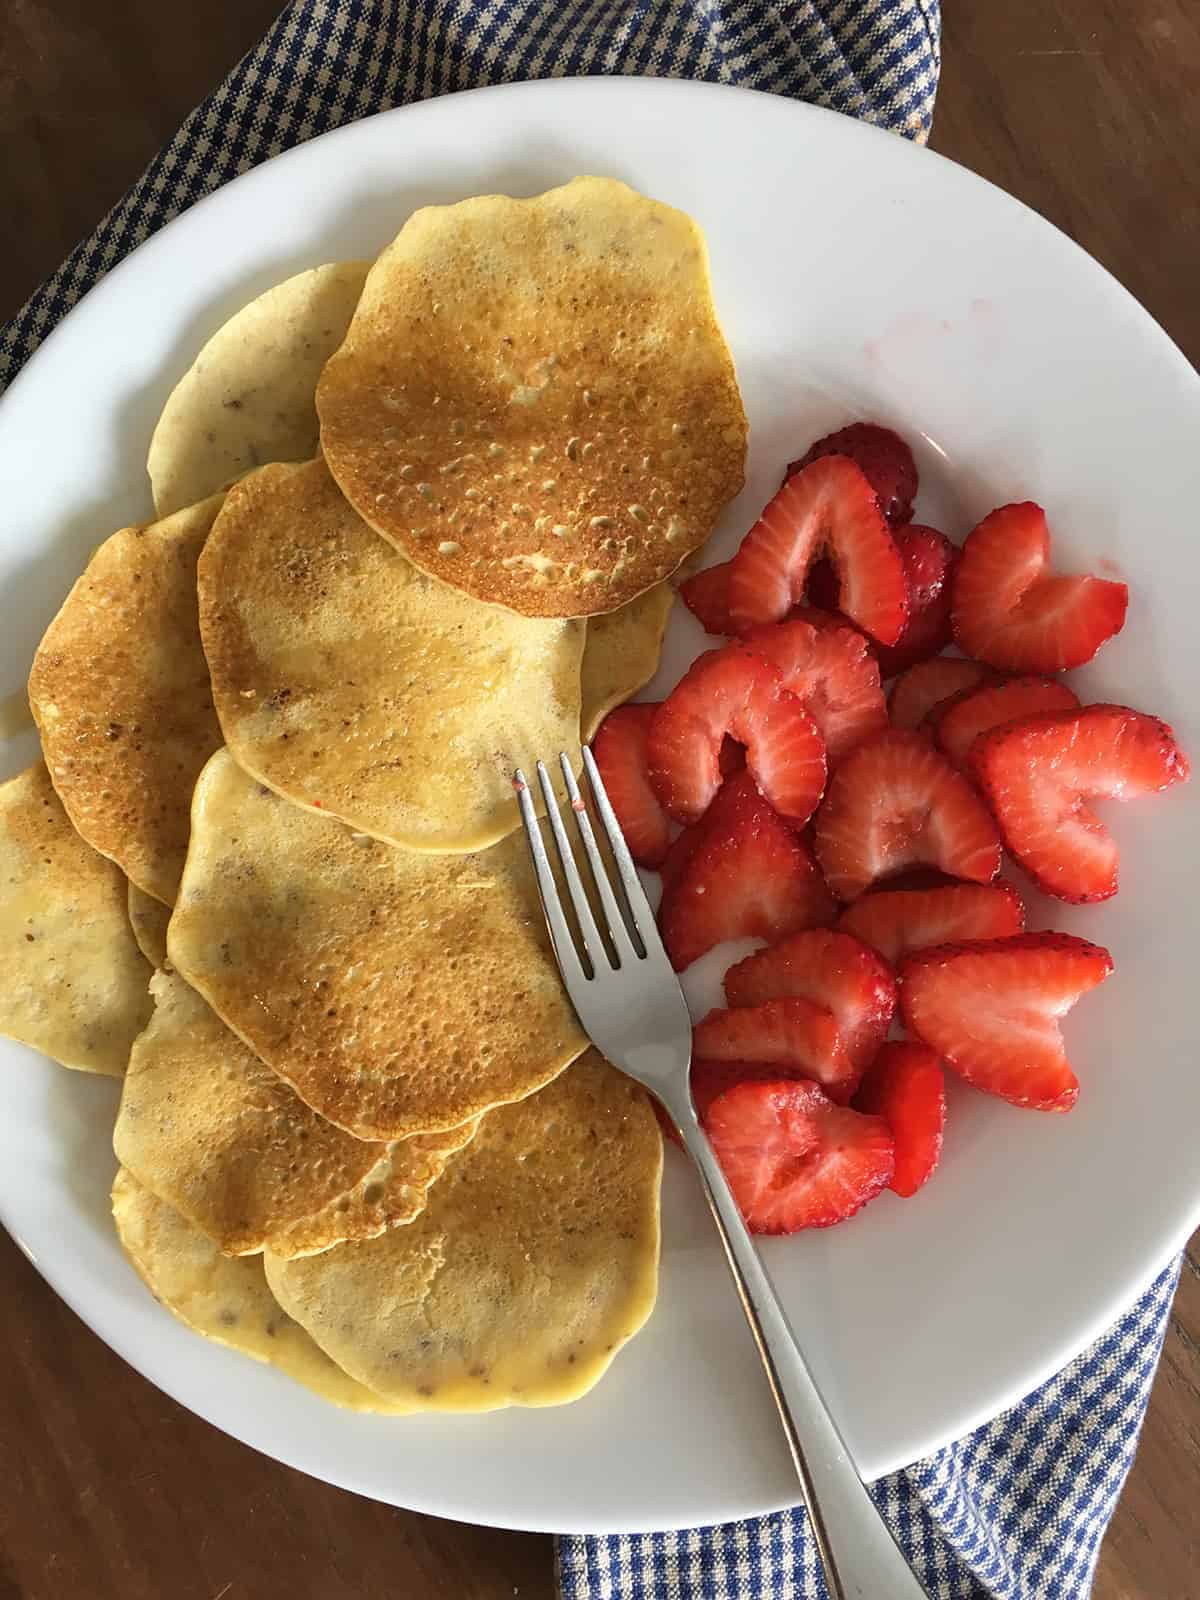 Mini almond flour crepes with fresh sliced strawberries and a fork on a white plate